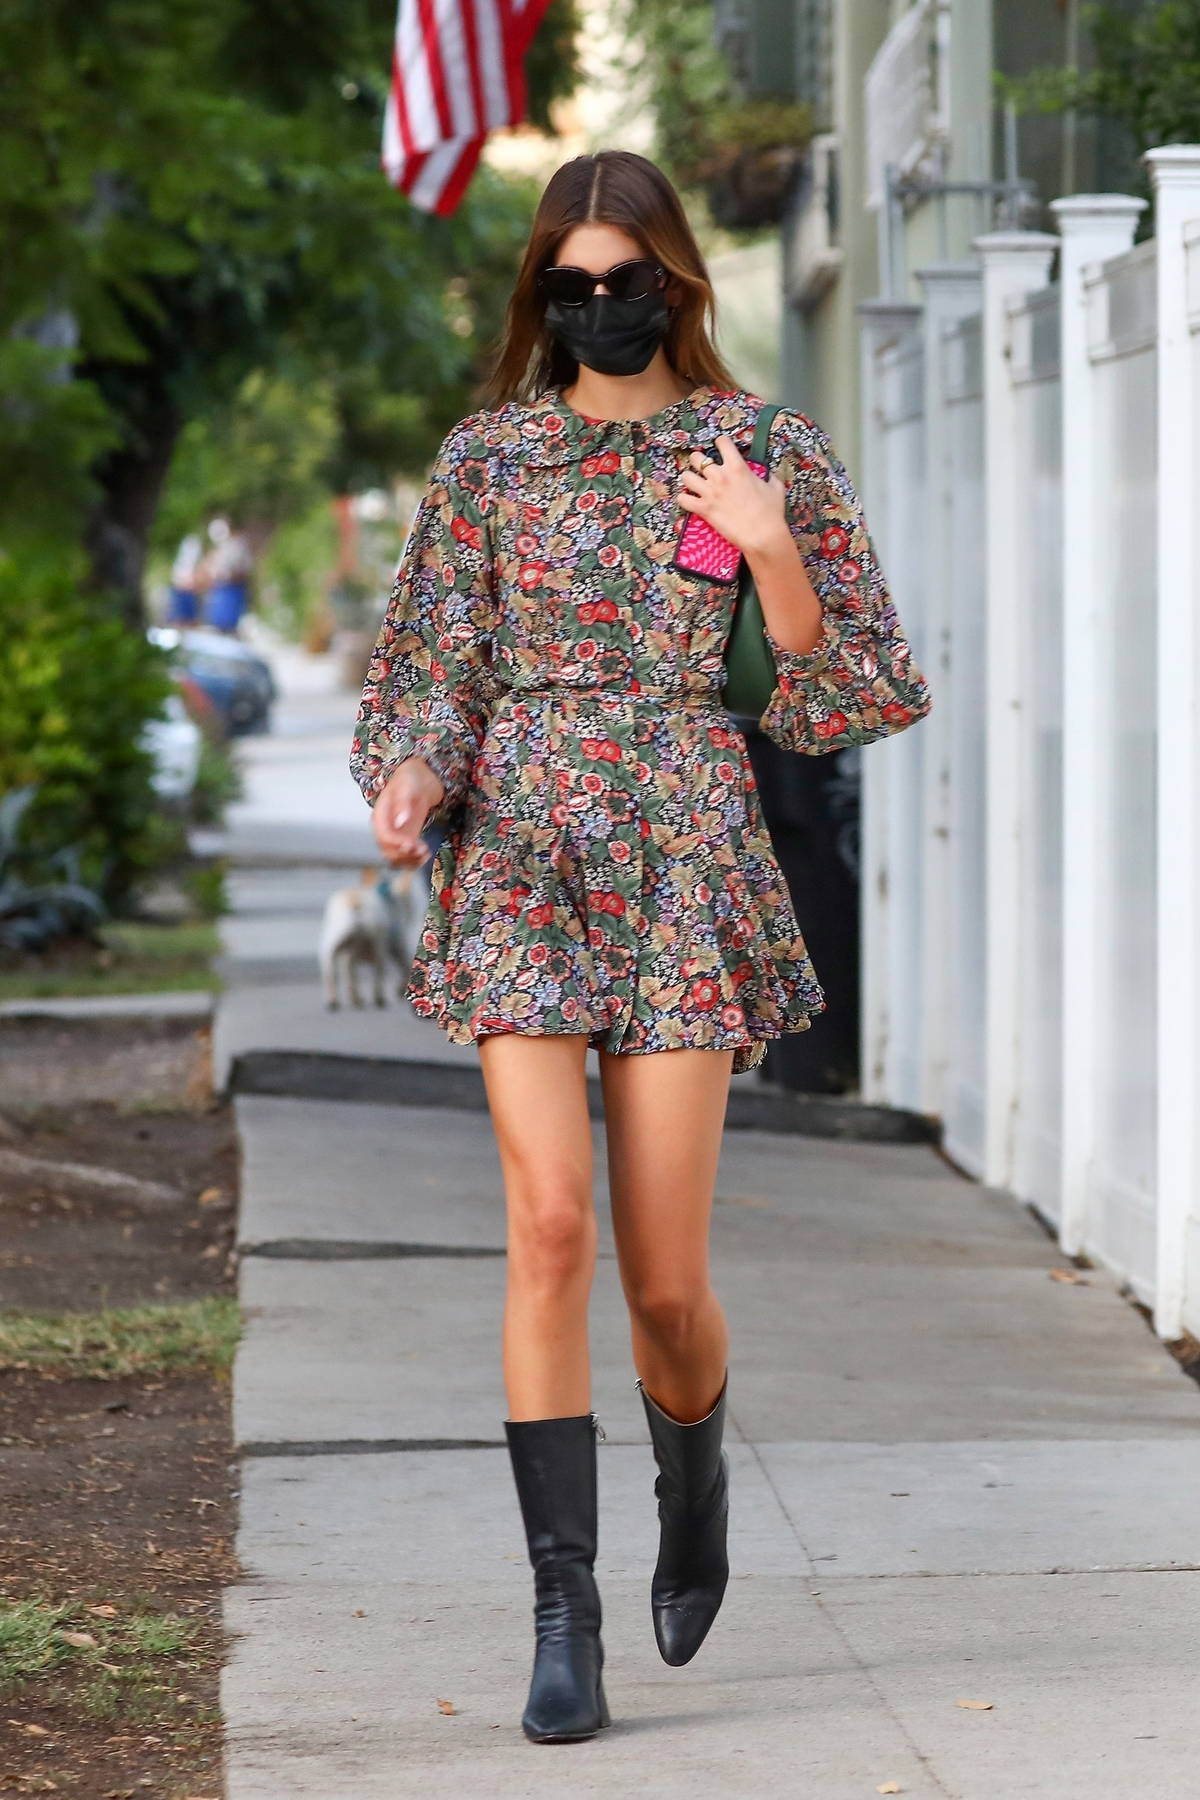 Kaia Gerber wears a floral print dress with black leather boots for dinner with friends in Silverlake, California